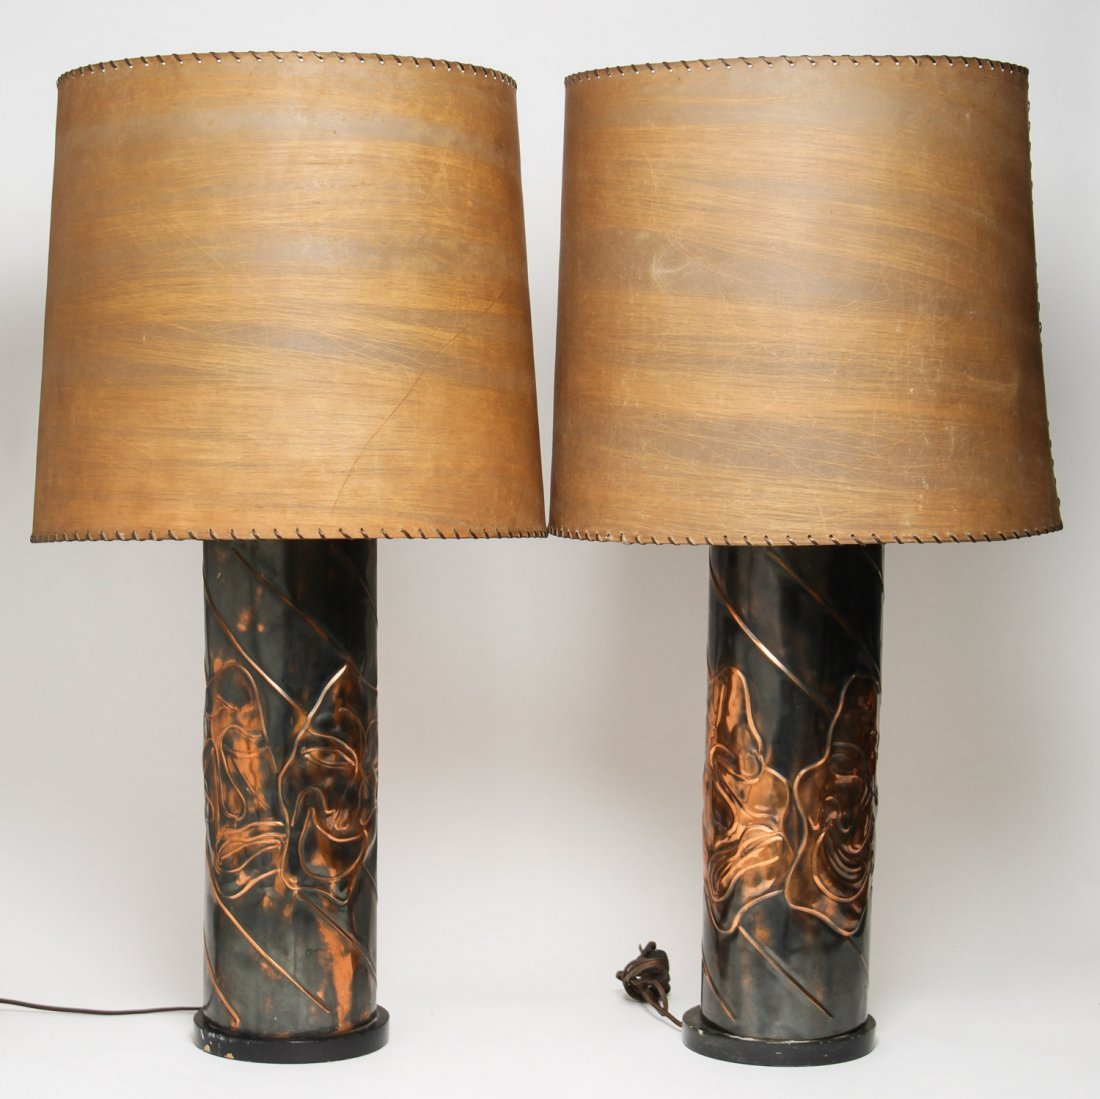 Hammered Copper & Marble Lamps, Vintage Pair